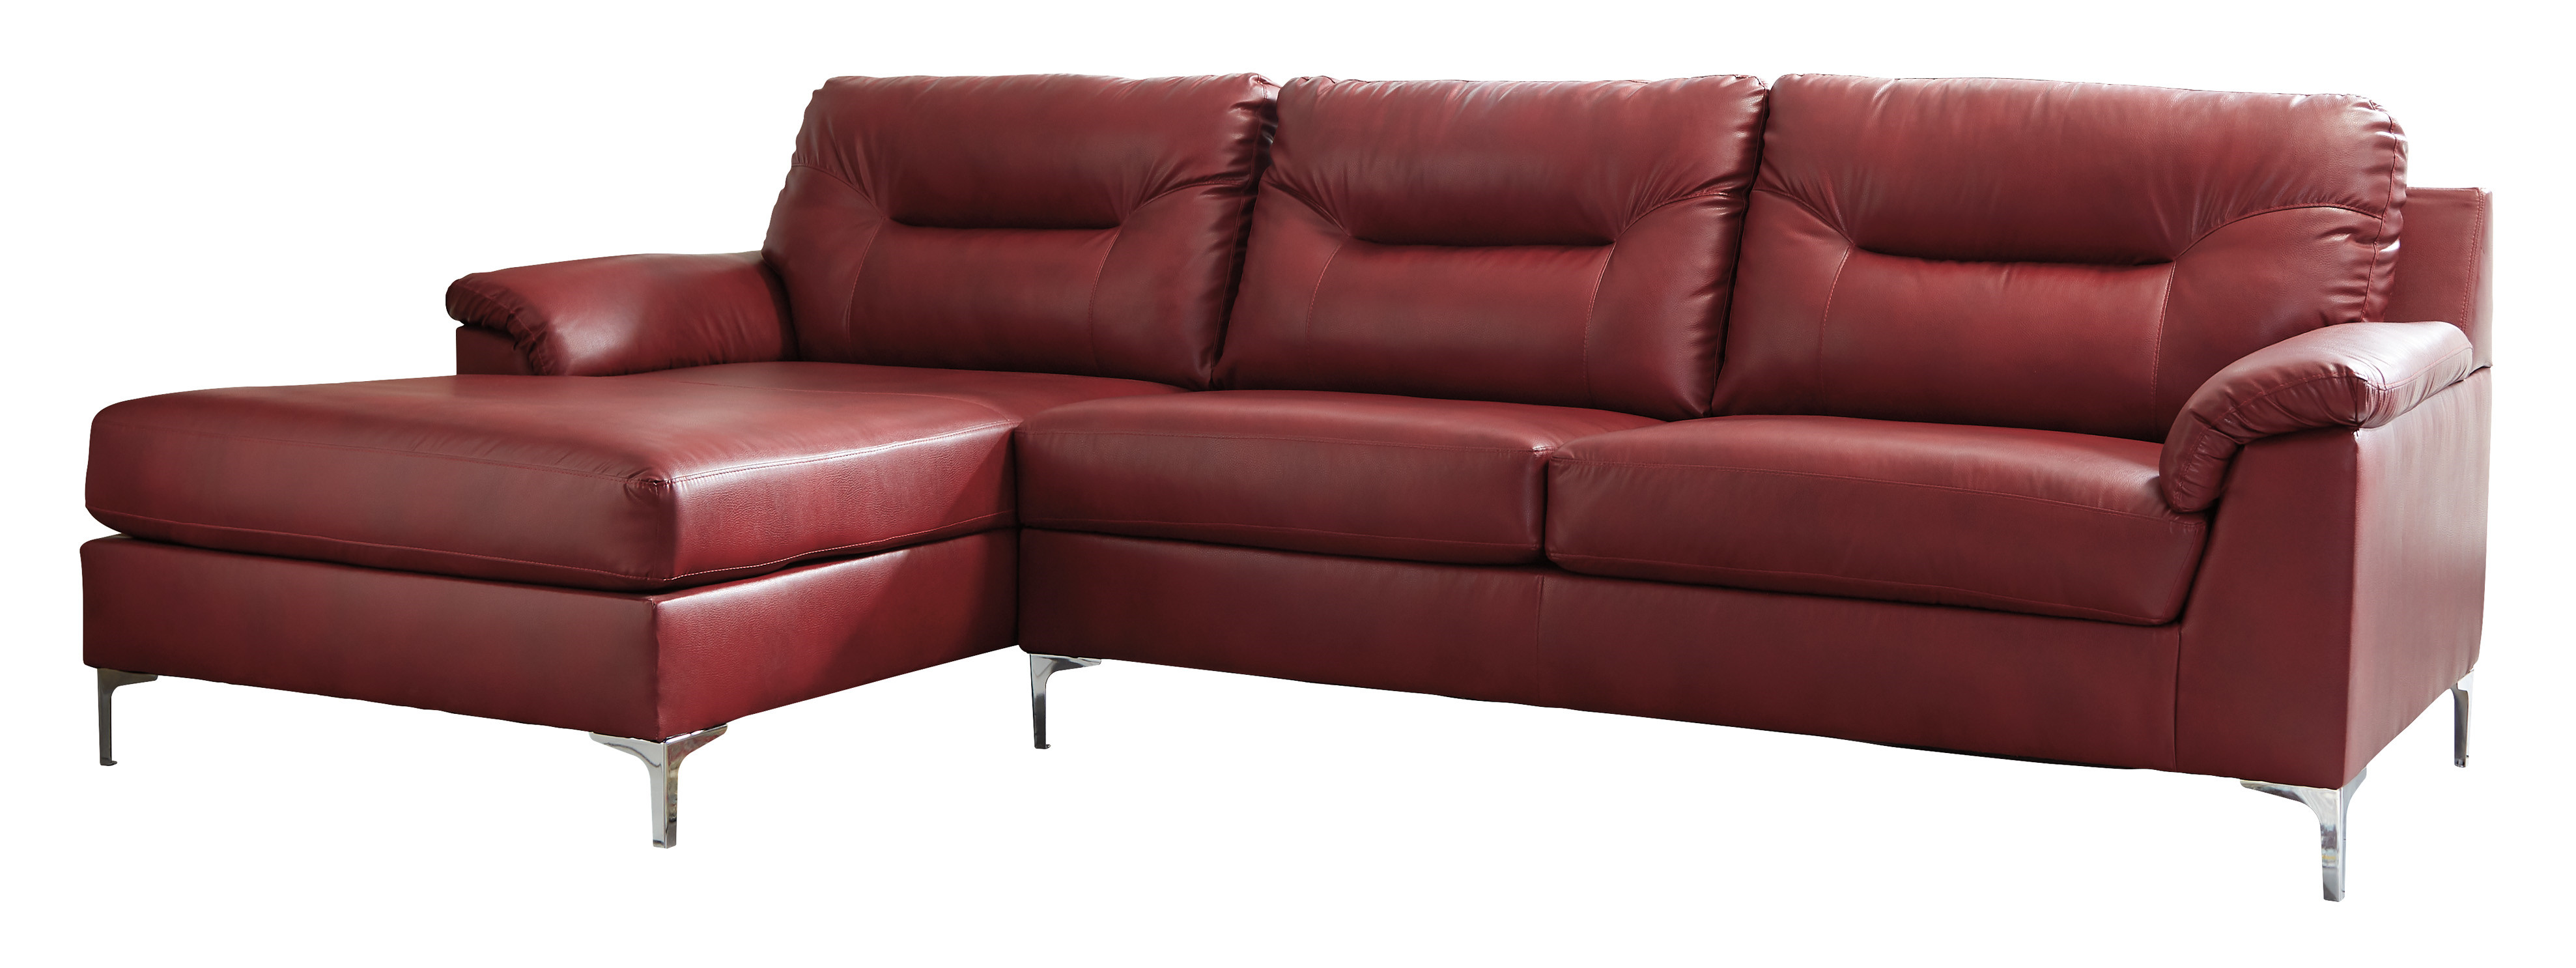 Ashley Furniture Tensas Crimson LAF Sectional | The Classy Home